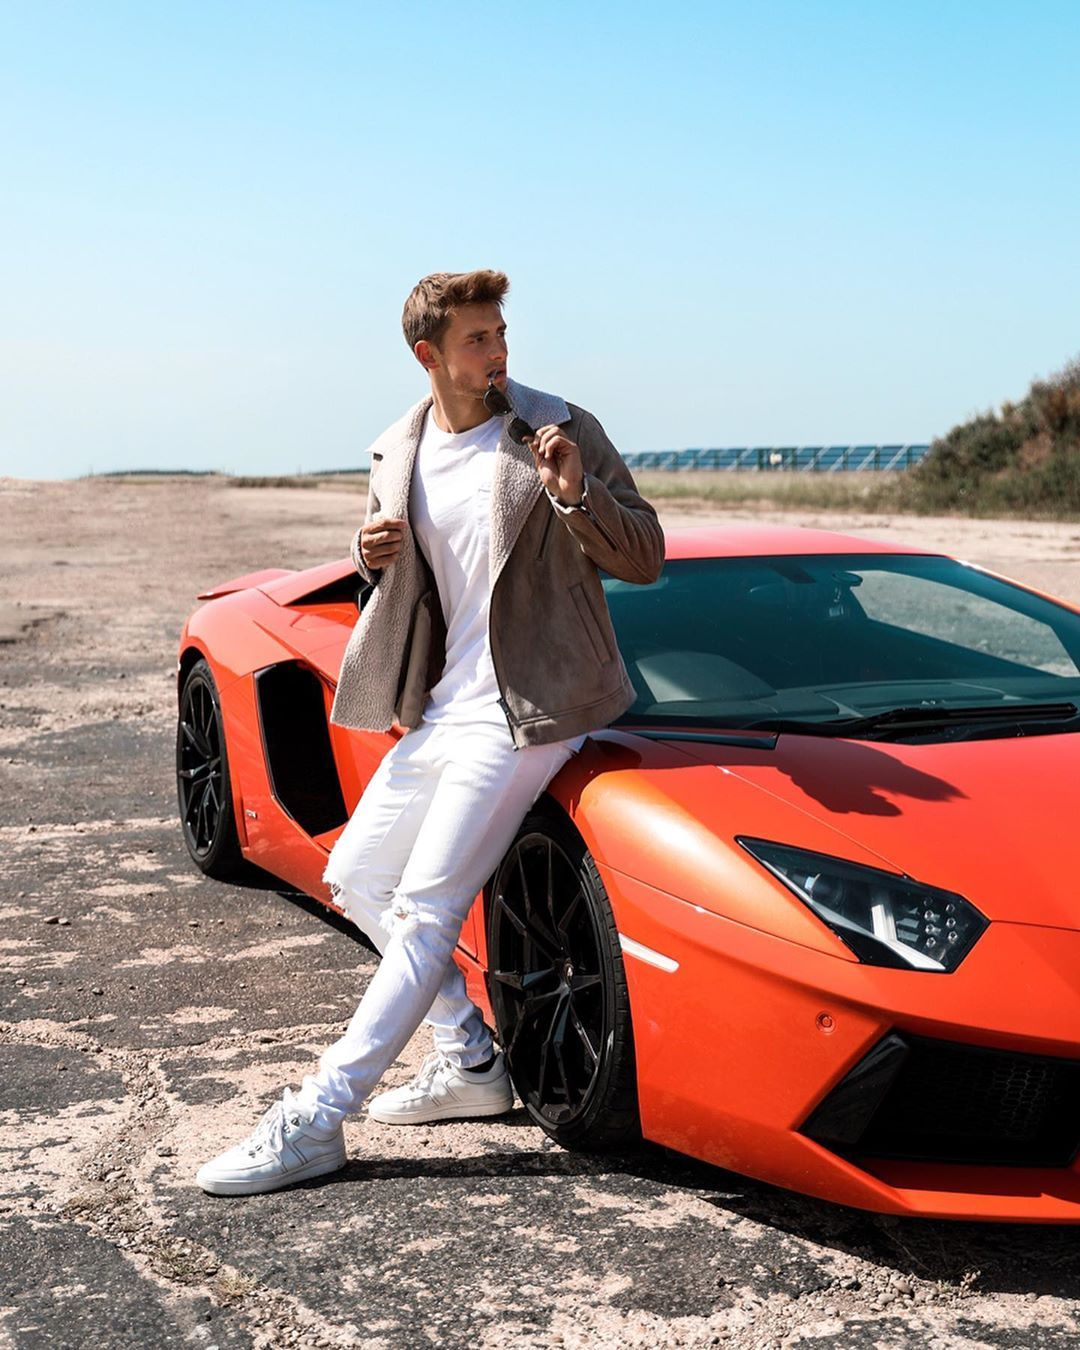 Fabian Arnold Model On Instagram Who Would Come For A Ride Had An Amazing Weekend Driving Sport Cars In London And Mee Sport Cars Riding Model